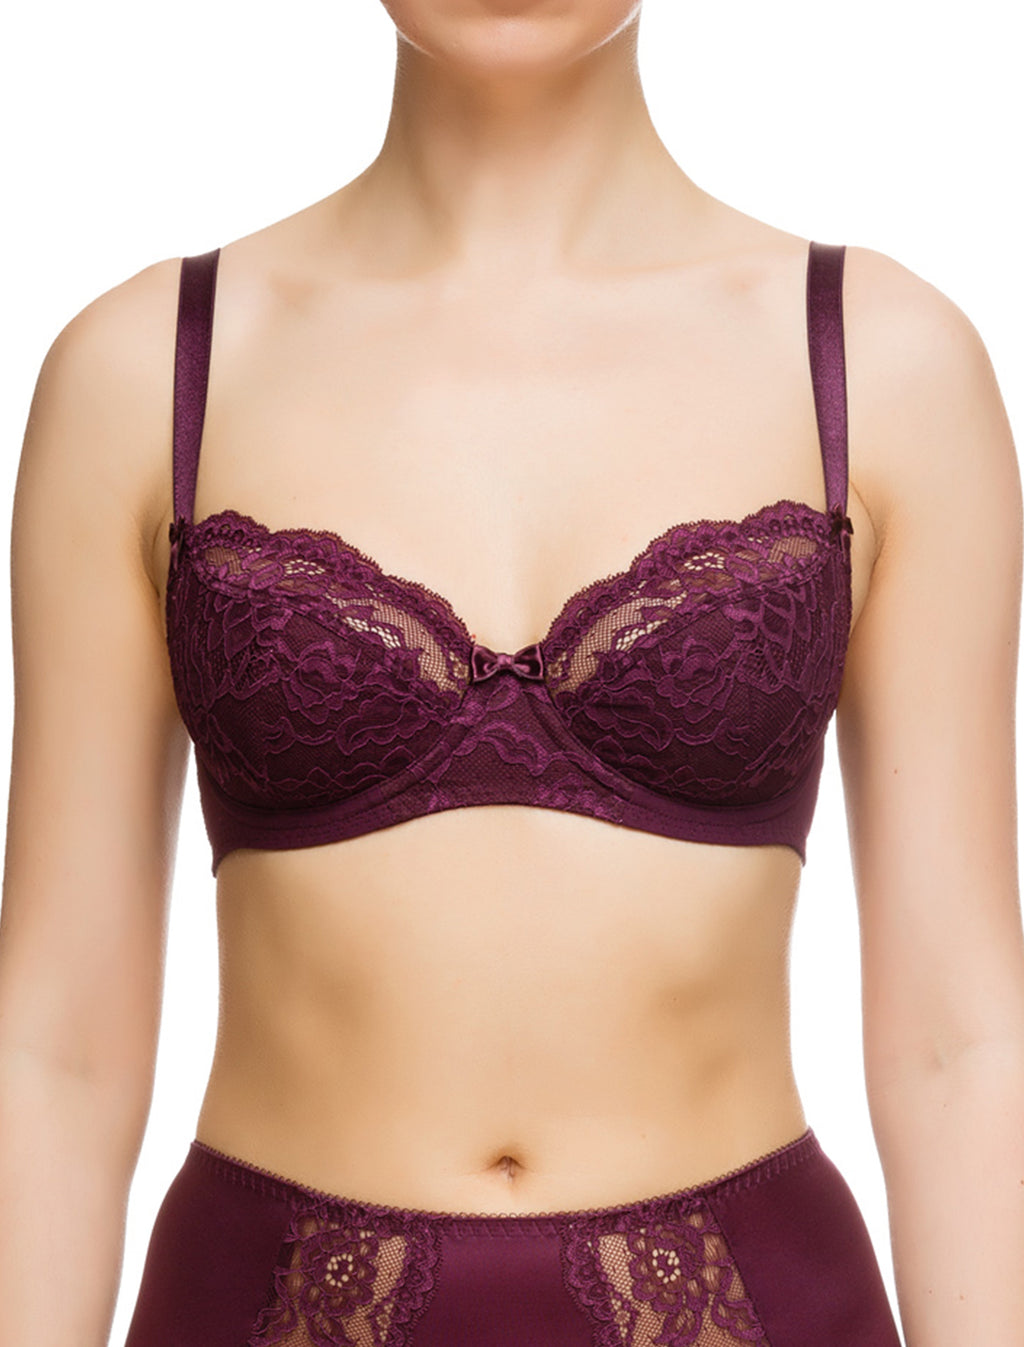 Lauma, Violet Underwired Non-padded Bra, On Model Front, 72F20